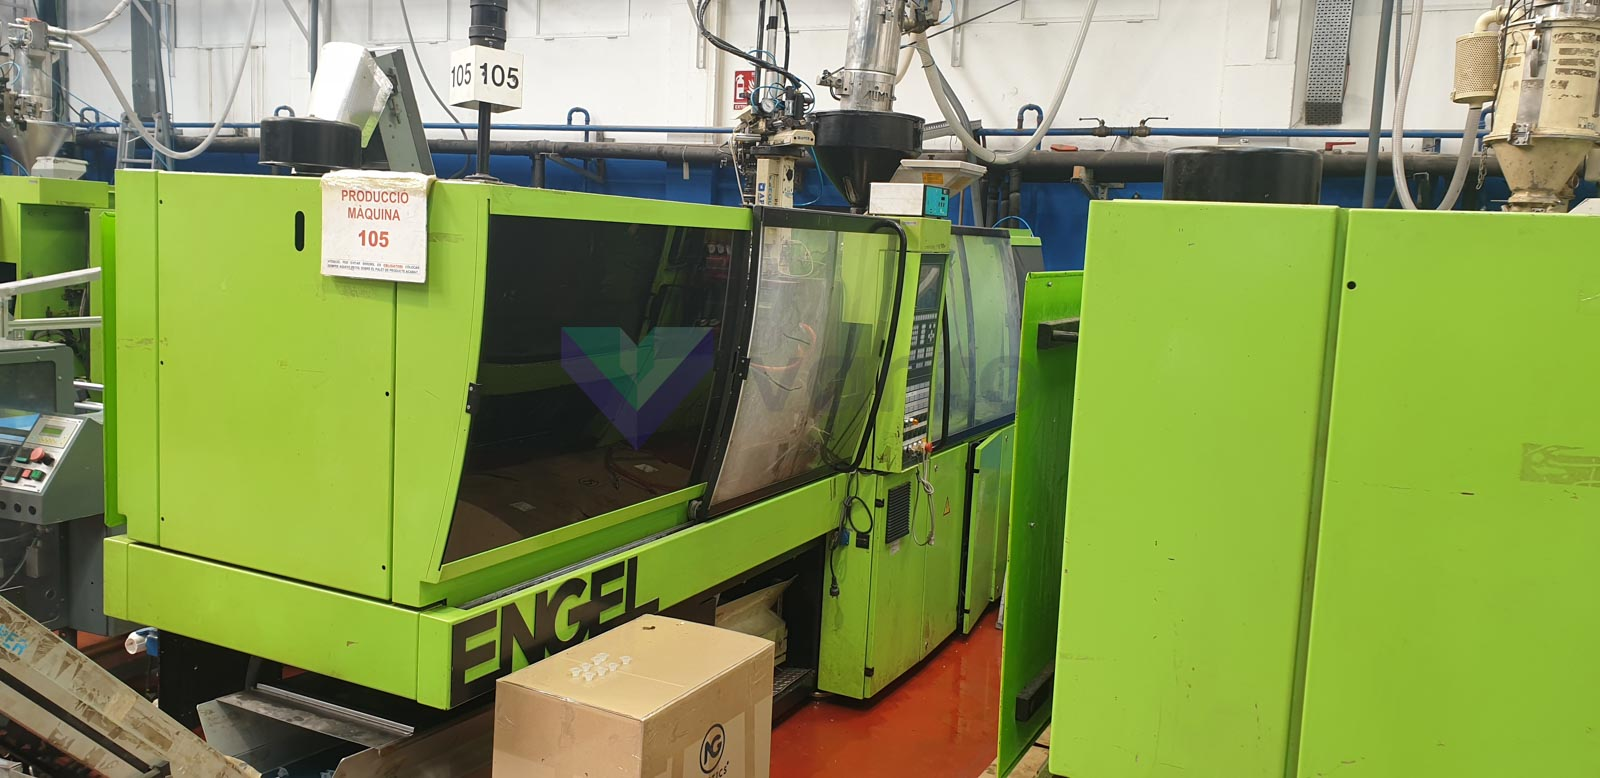 ENGEL ES 500 / 110 HL-V 110t injection molding machine (2002) id10507